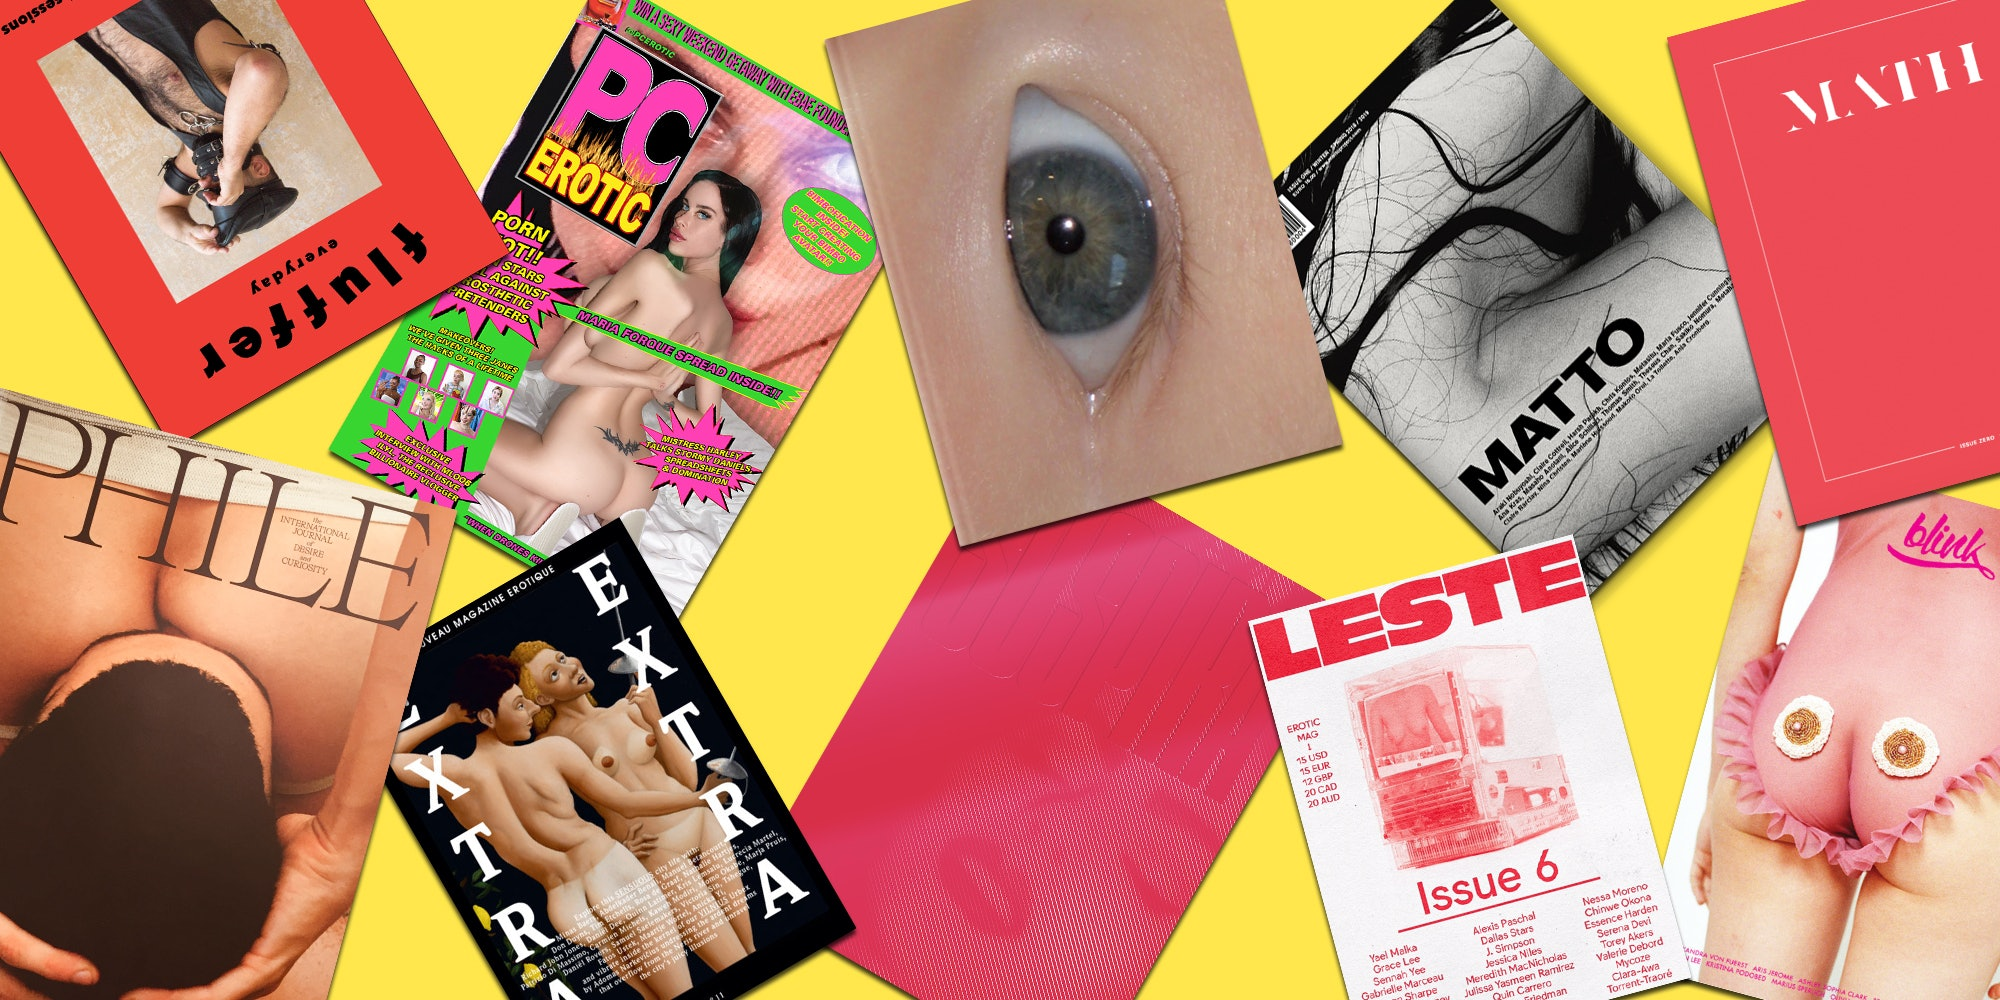 Best independent erotic magazines right now (NSFW)